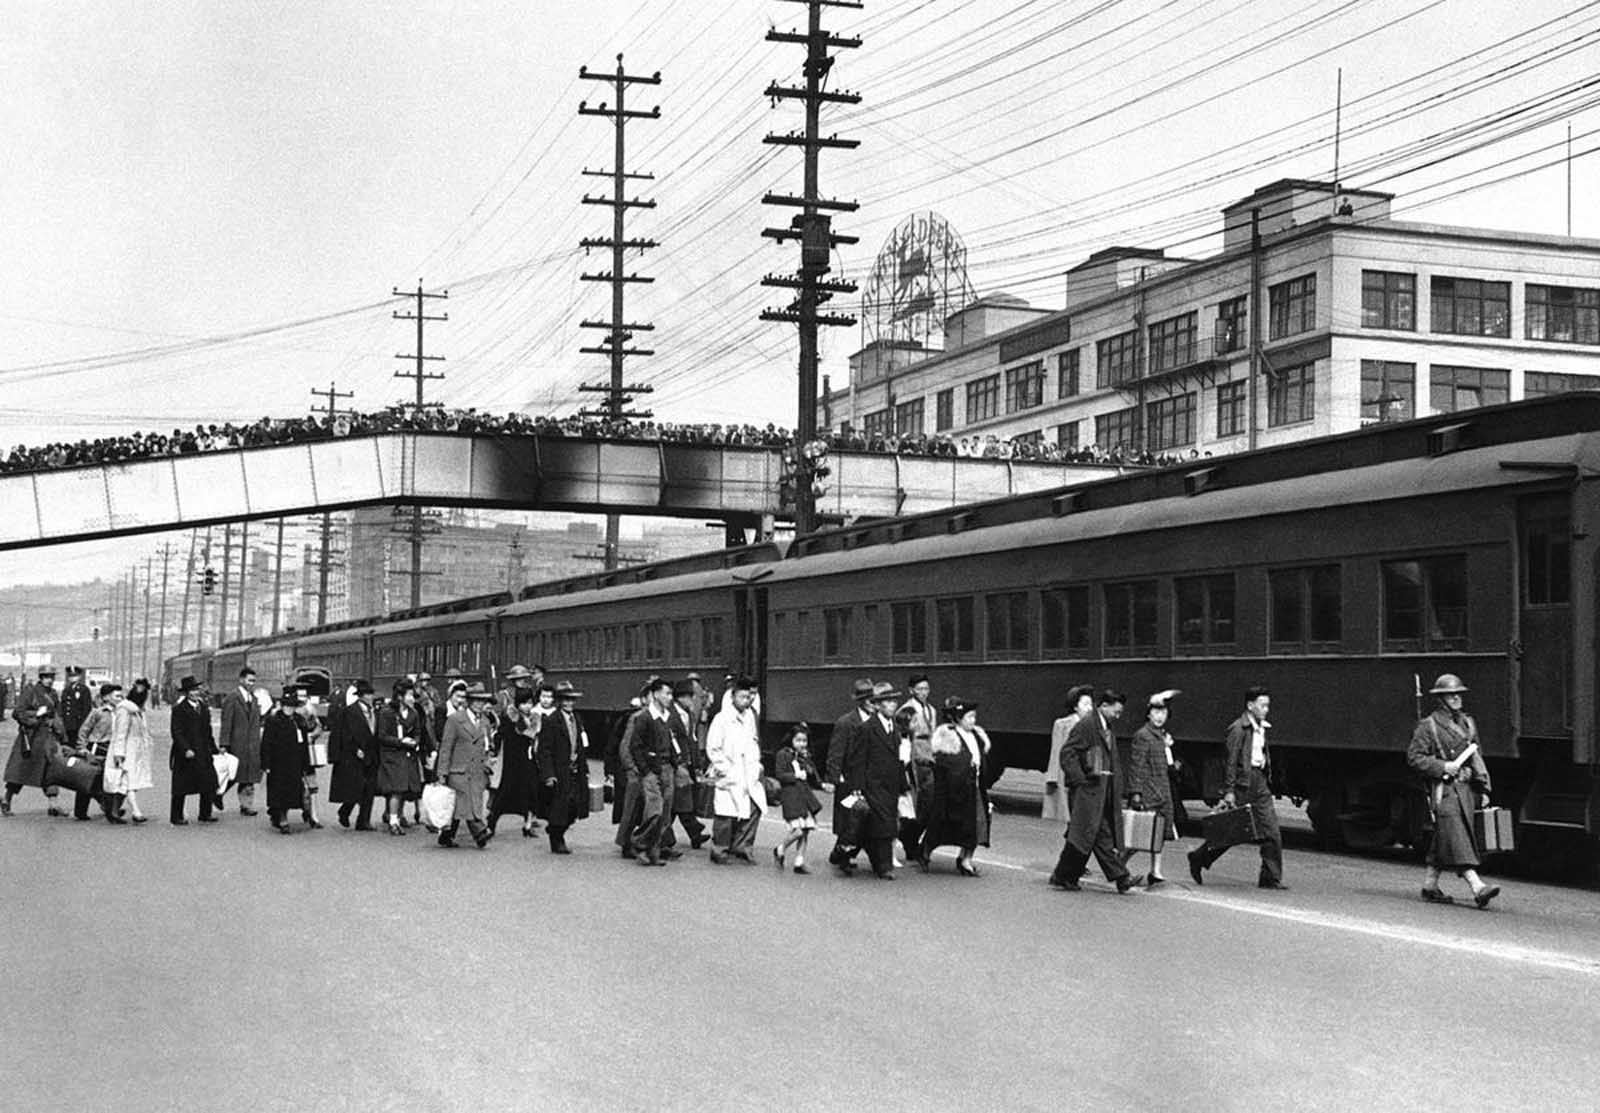 A crowd of onlookers in Seattle jam an overhead walk to witness the mass evacuation of Japanese from Bainbridge Island, Washington, on March 30, 1942. Somewhat bewildered, but not protesting, some 225 Japanese men, women and children were taken by ferry, bus and train to California internment camps. The evacuation was carried out by the U.S. Army.